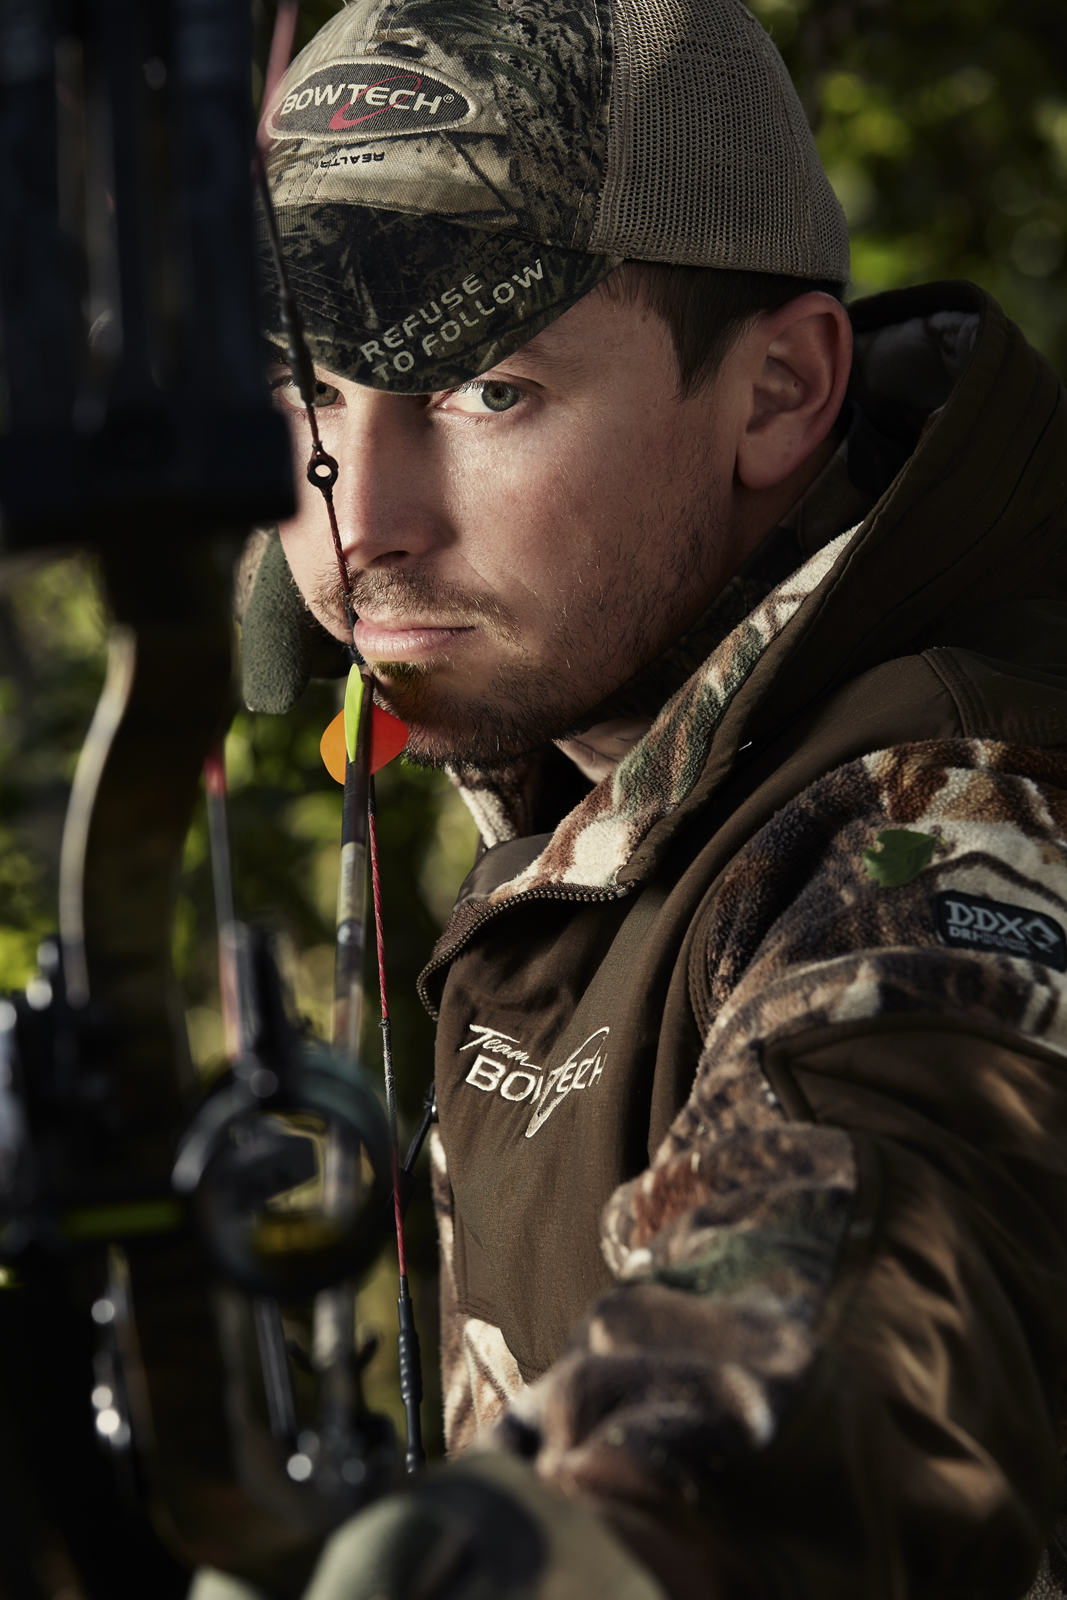 RPM360-Bowhunter-07052014-_MG_1185